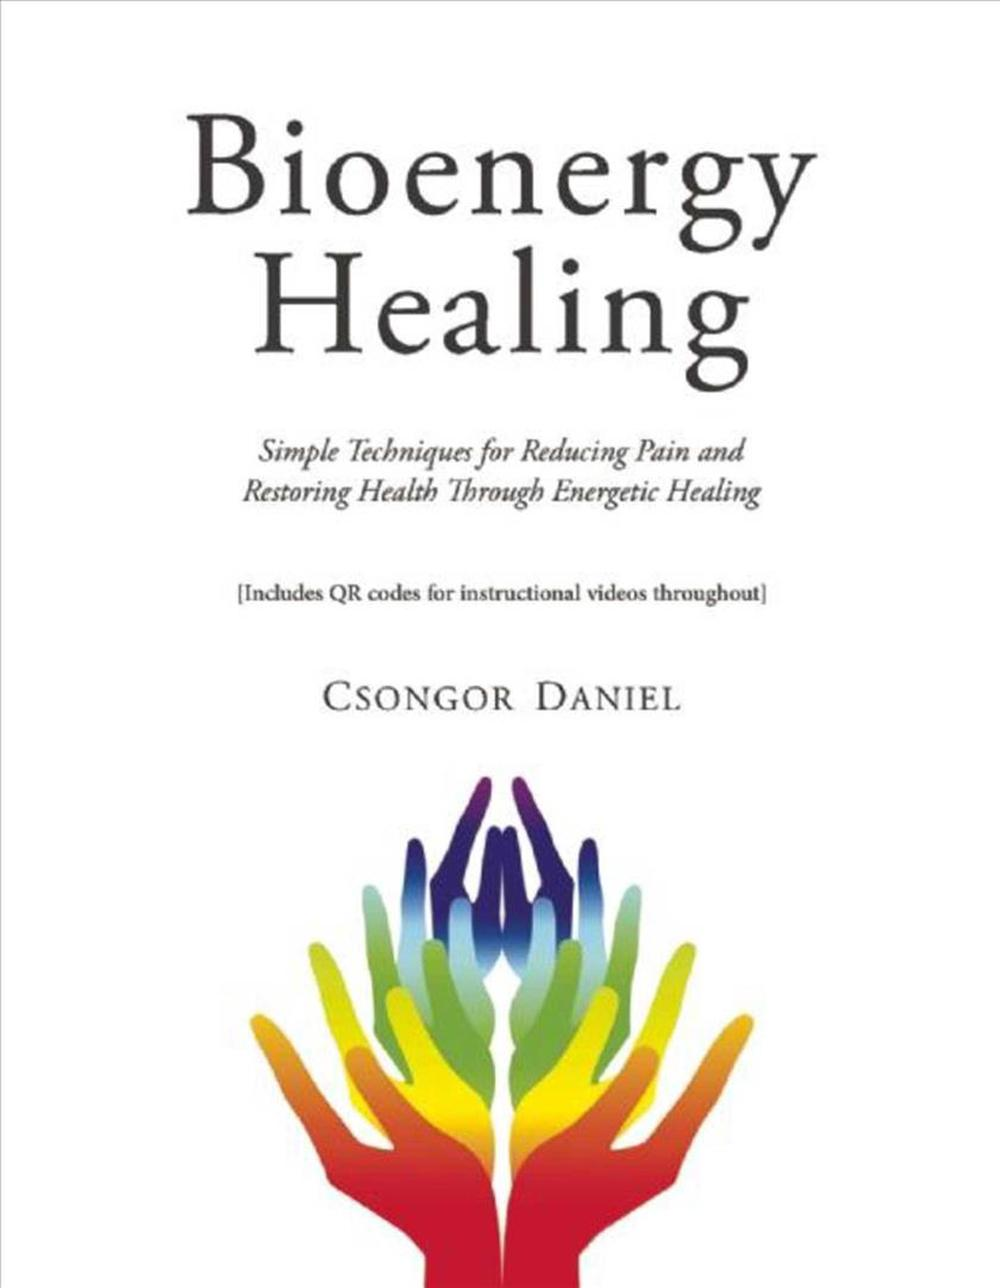 Bioenergy Healing: Simple Techniques for Reducing Pain and Restoring Health Through Energetic Healing